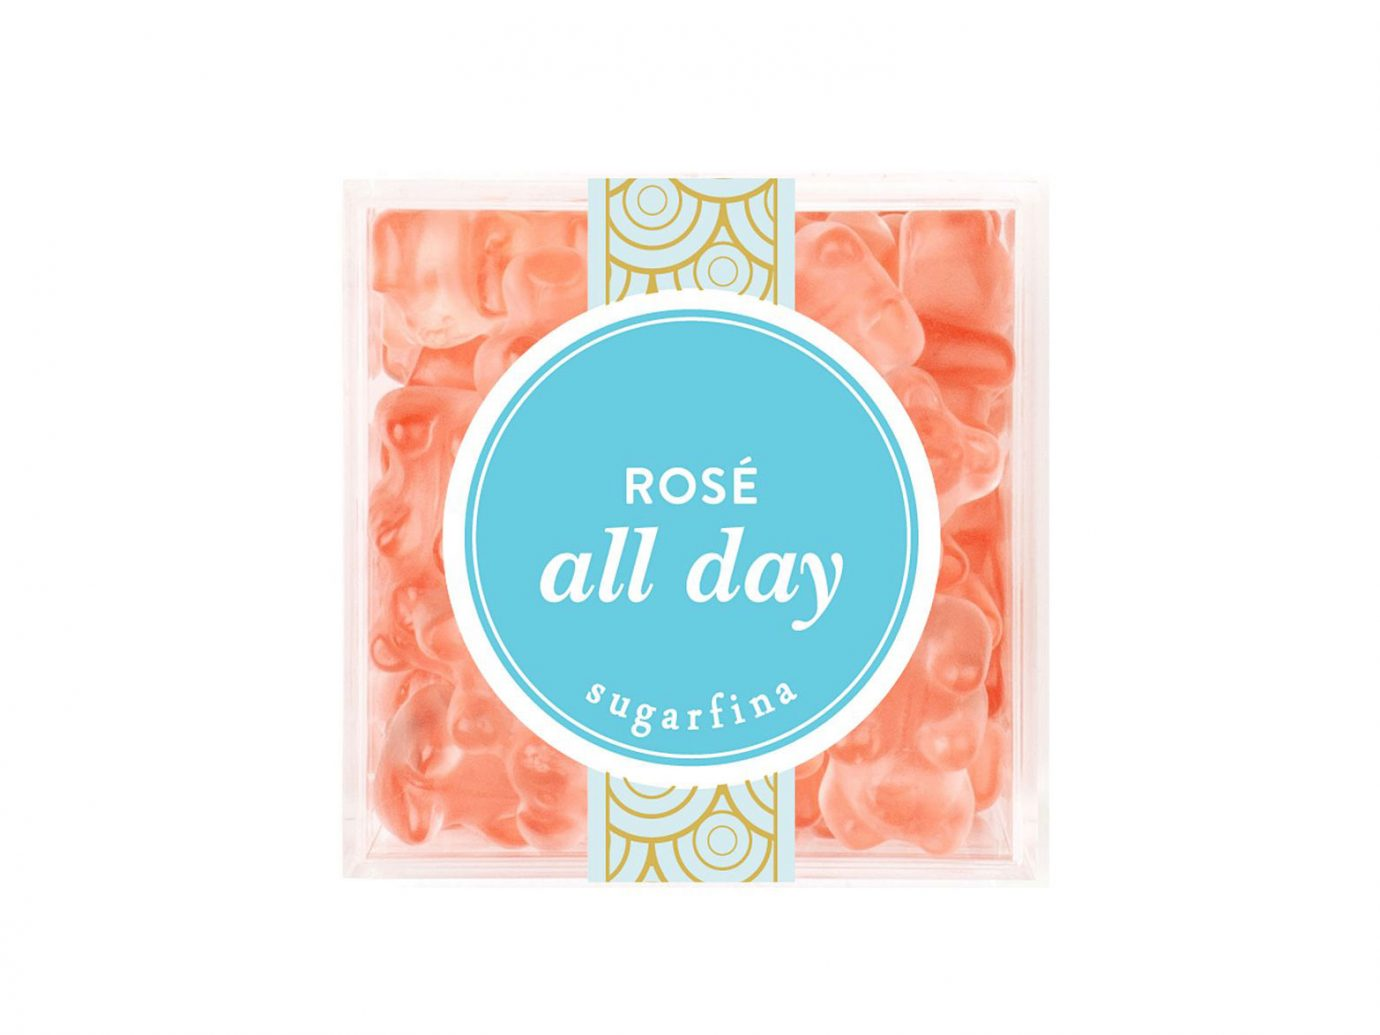 Sugarfina Rosé Infused Gummy Bear Gift Box